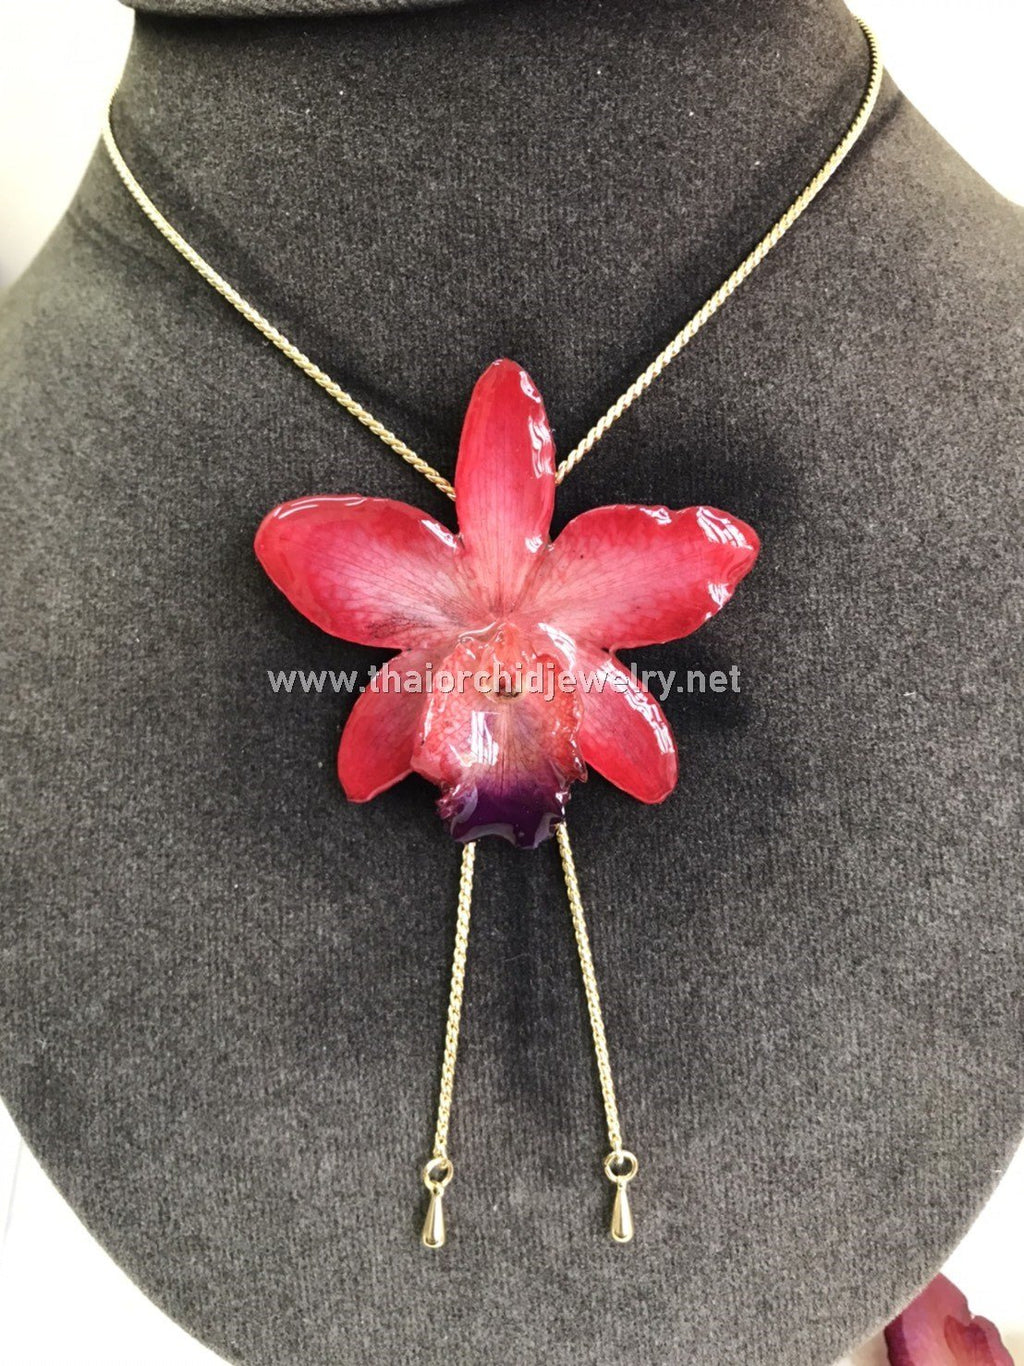 Cattleya Orchid Jewelry Slider Necklace Gold Plated 24K - RED RUBY